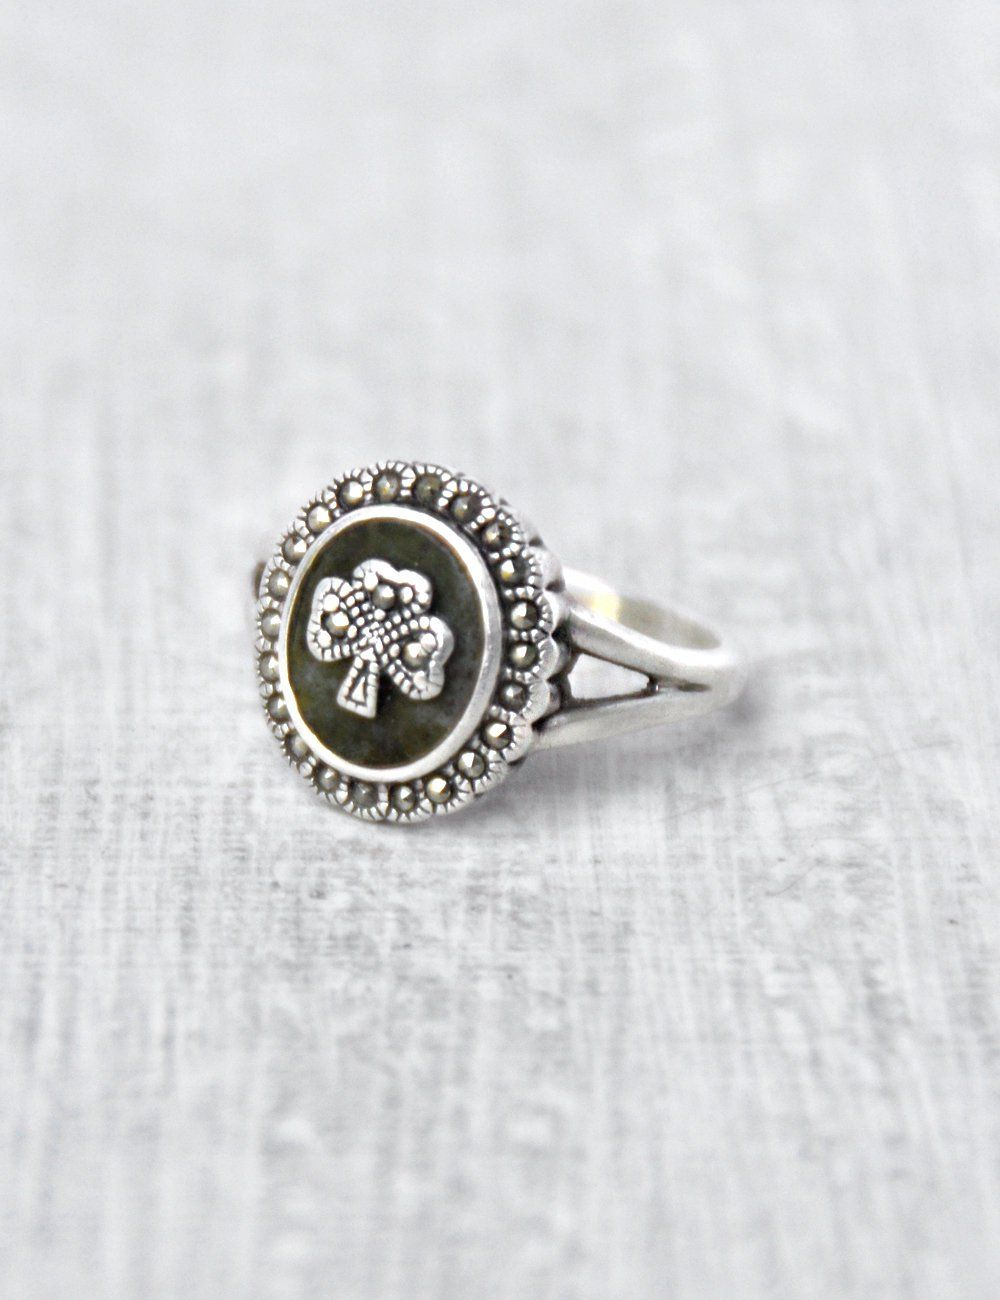 cf6857e94 Vintage Connemara Marble Shamrock Ring - sterling silver marcasite scalloped  oval - drab green stone - Irish good luck charm - Size 7 by  CuriosityCabinet on ...